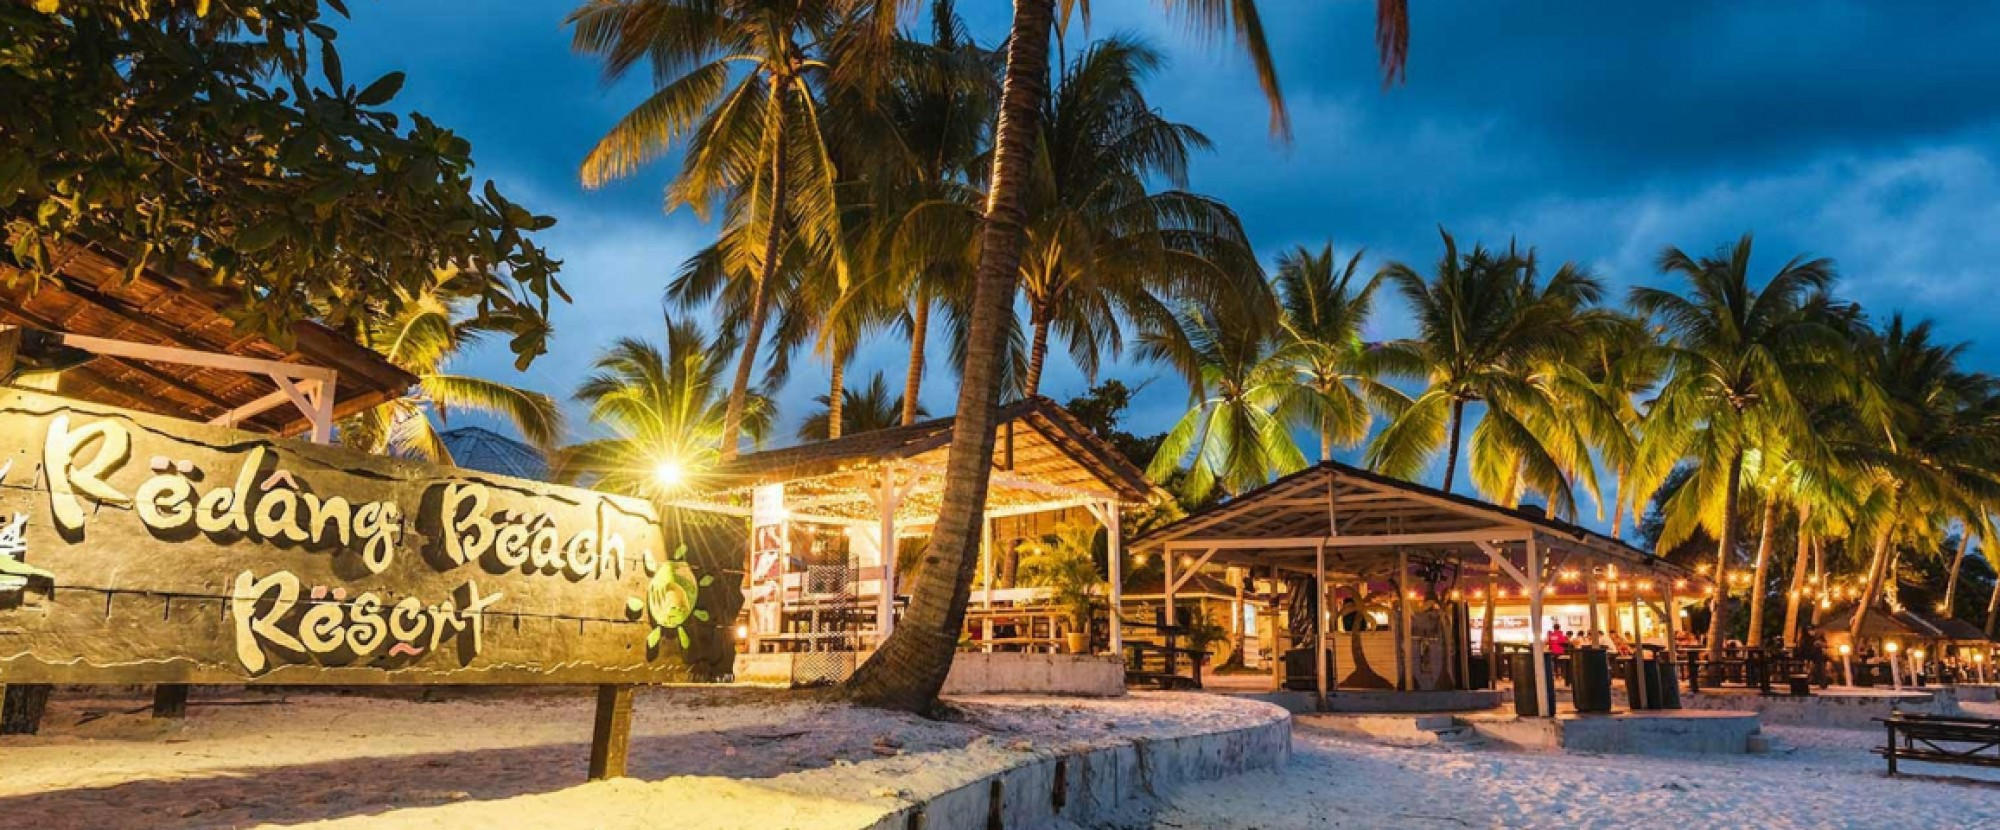 Redang Beach Resort - 3D2N Fullboard Package | Redang Island | Malaysia | Land Only Tour | AF Travel